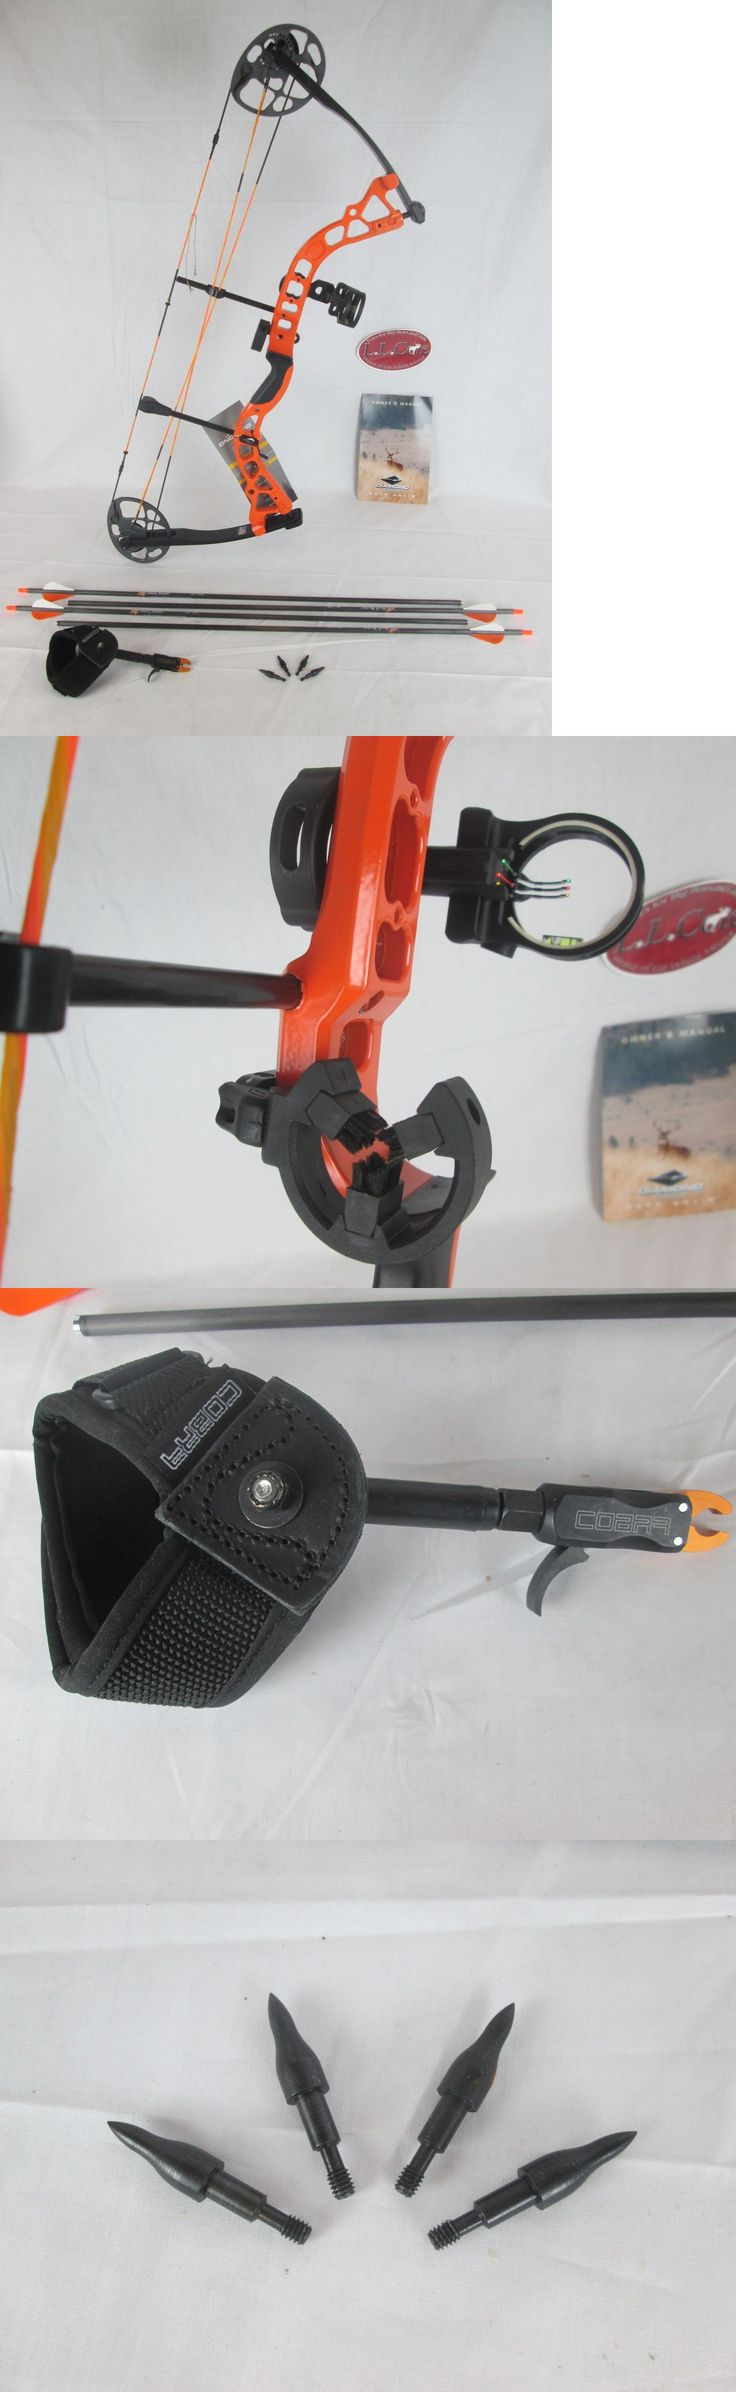 Compound 20838: Diamond Prism Compound Bow Package Left Hand Orange Replaced Infinite Edge -> BUY IT NOW ONLY: $255.98 on eBay!